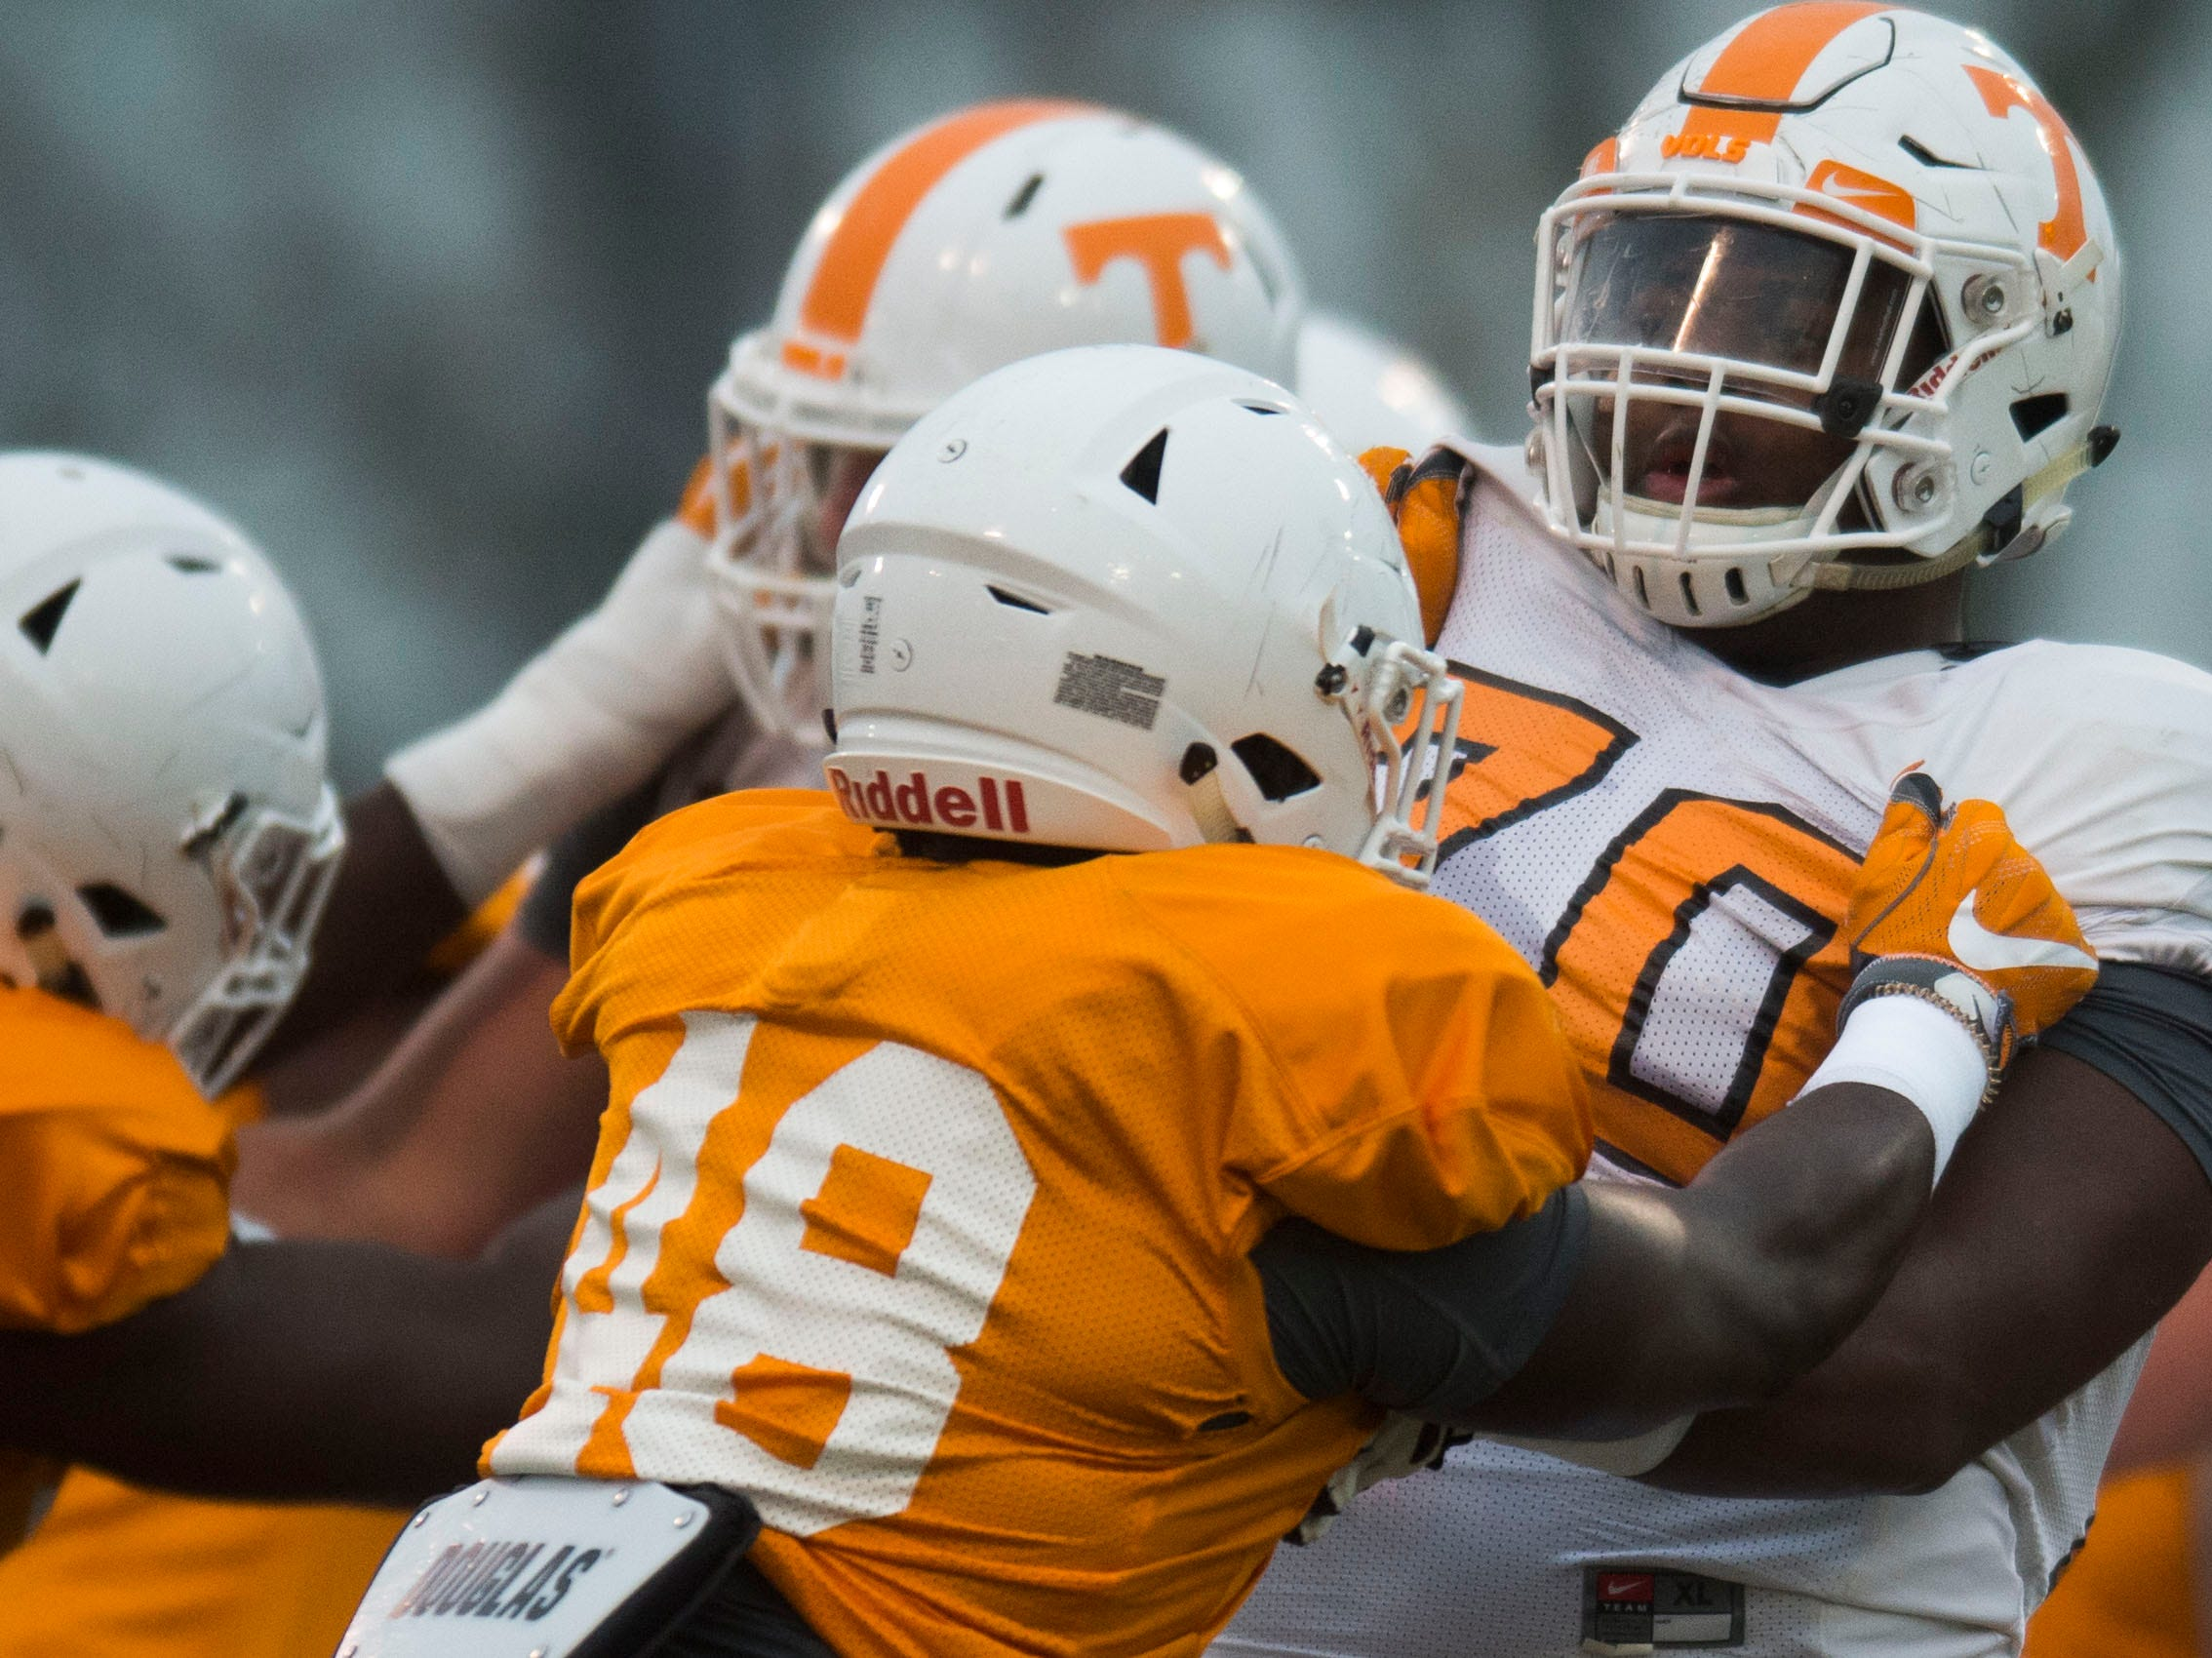 Tennessee players participate in a drill during a University of Tennessee football practice, Tuesday, Nov. 13, 2018.